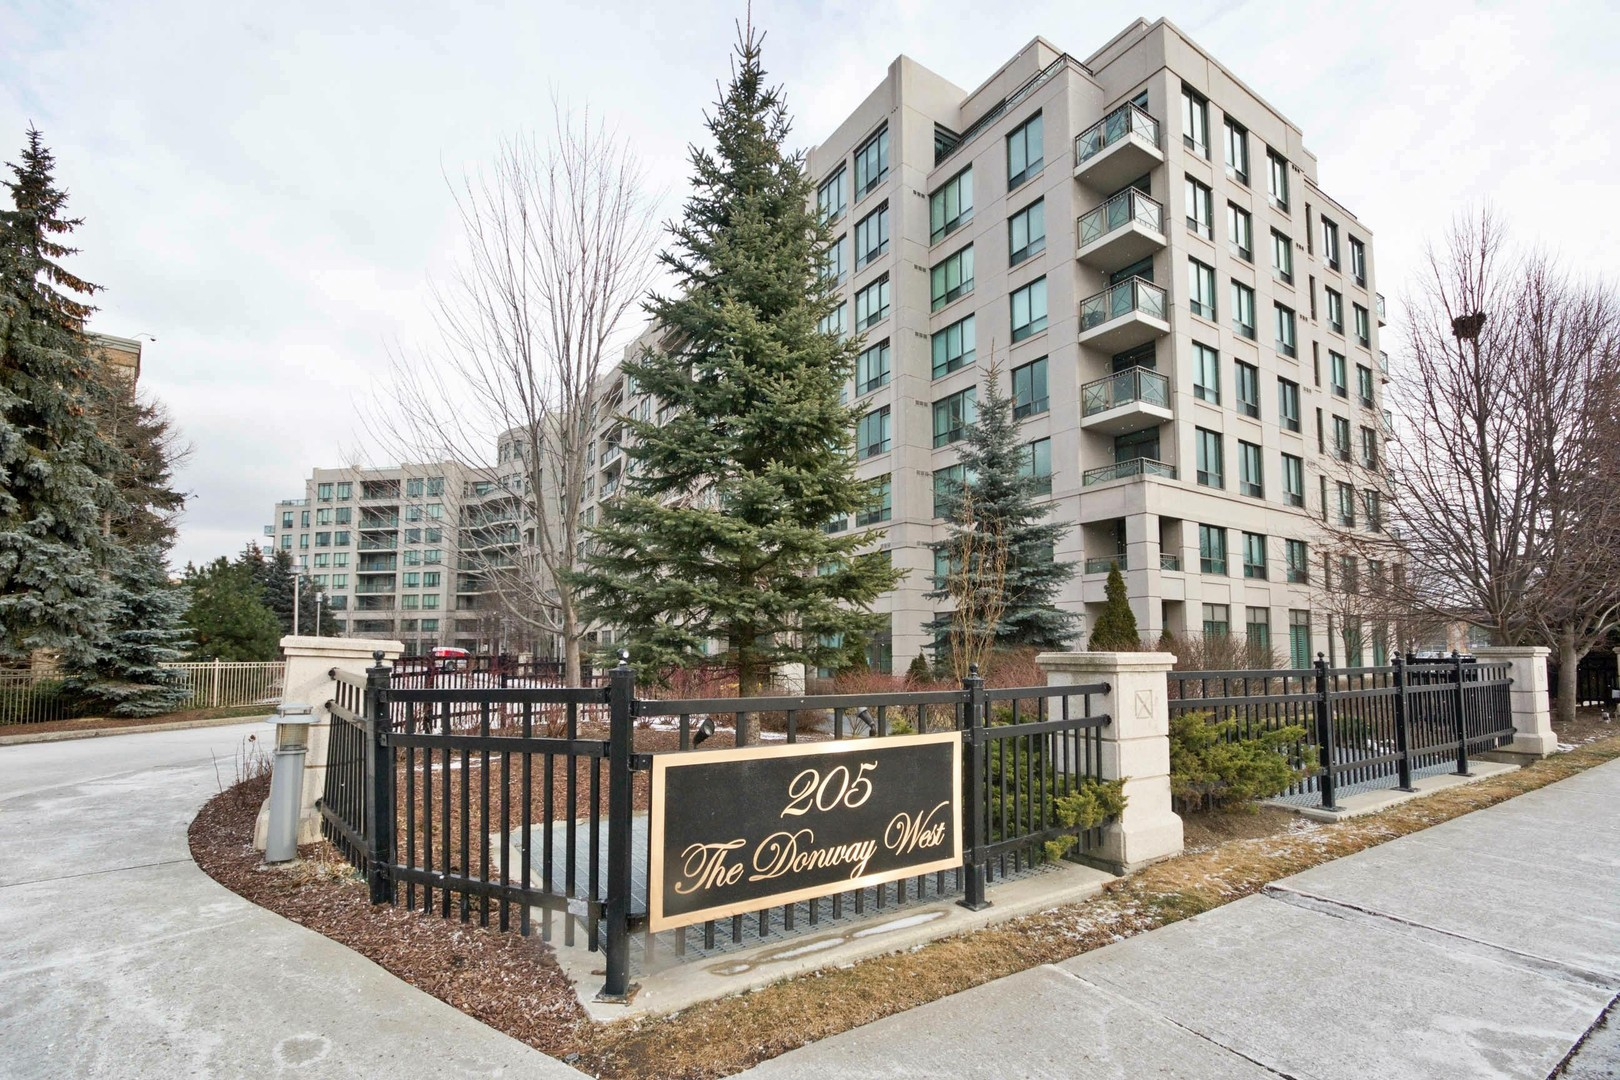 205 the donway way west 206 toronto